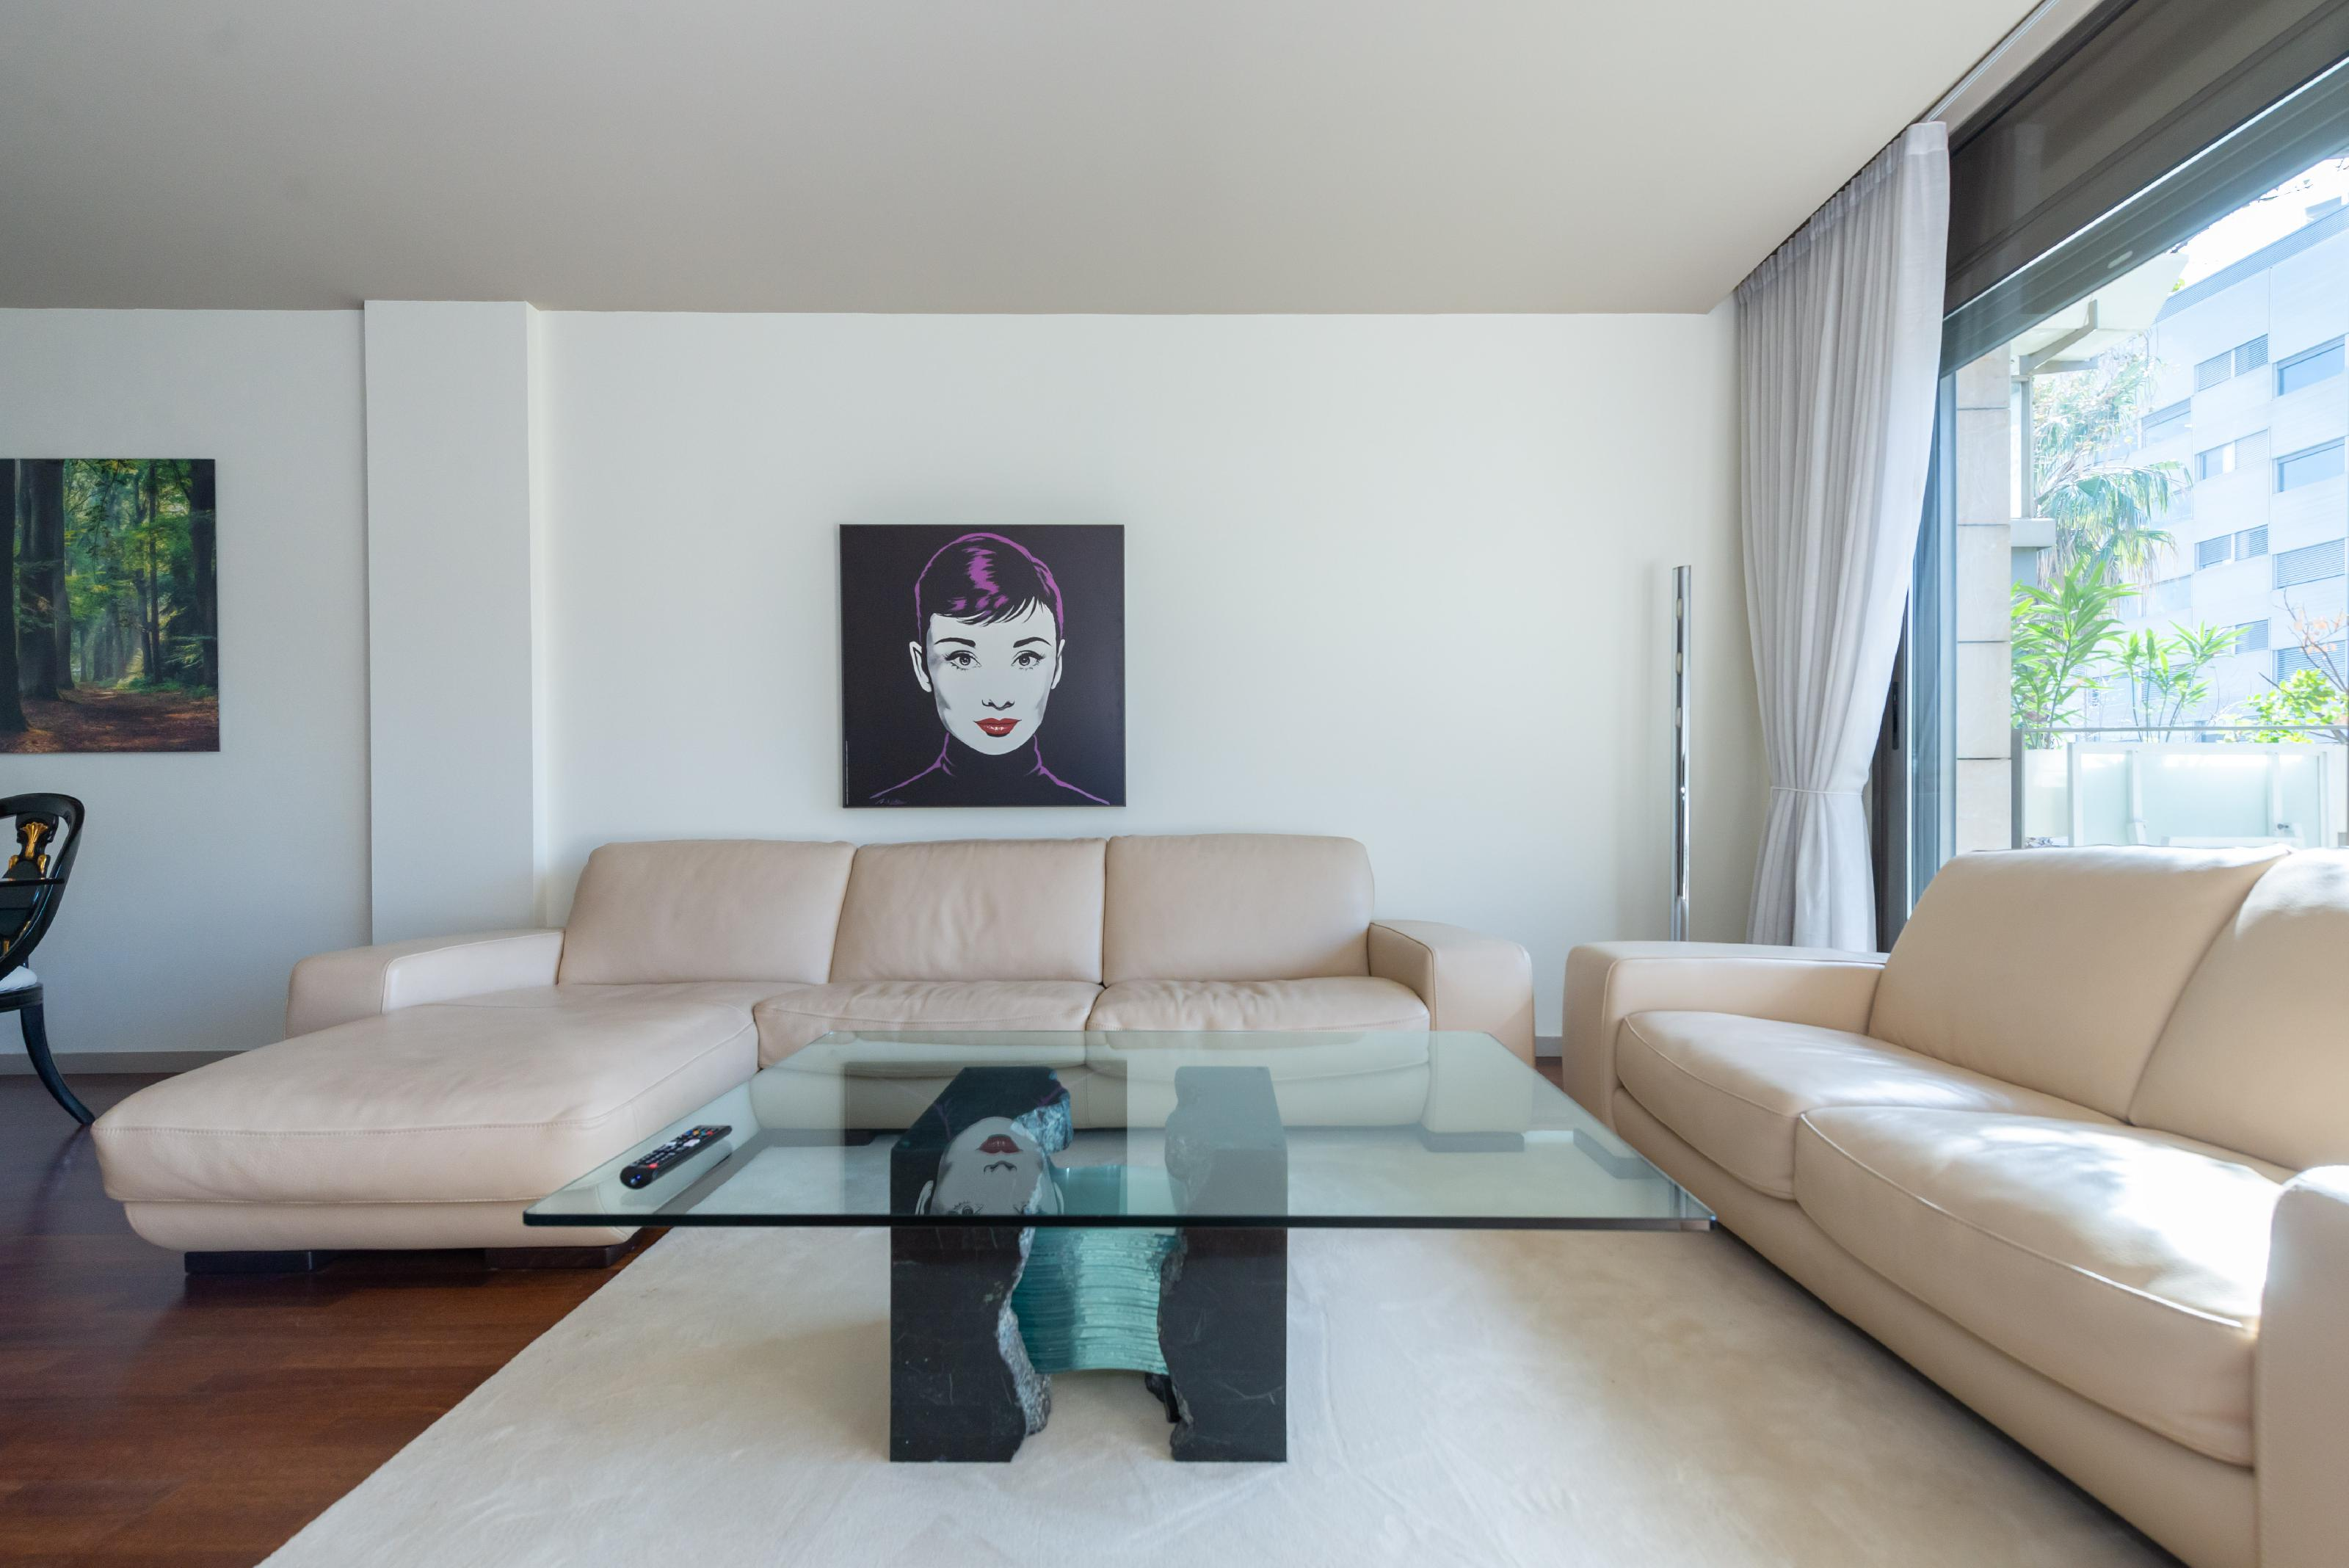 246682 Flat for sale in Gràcia, Vallcarca and Els Penitents 5